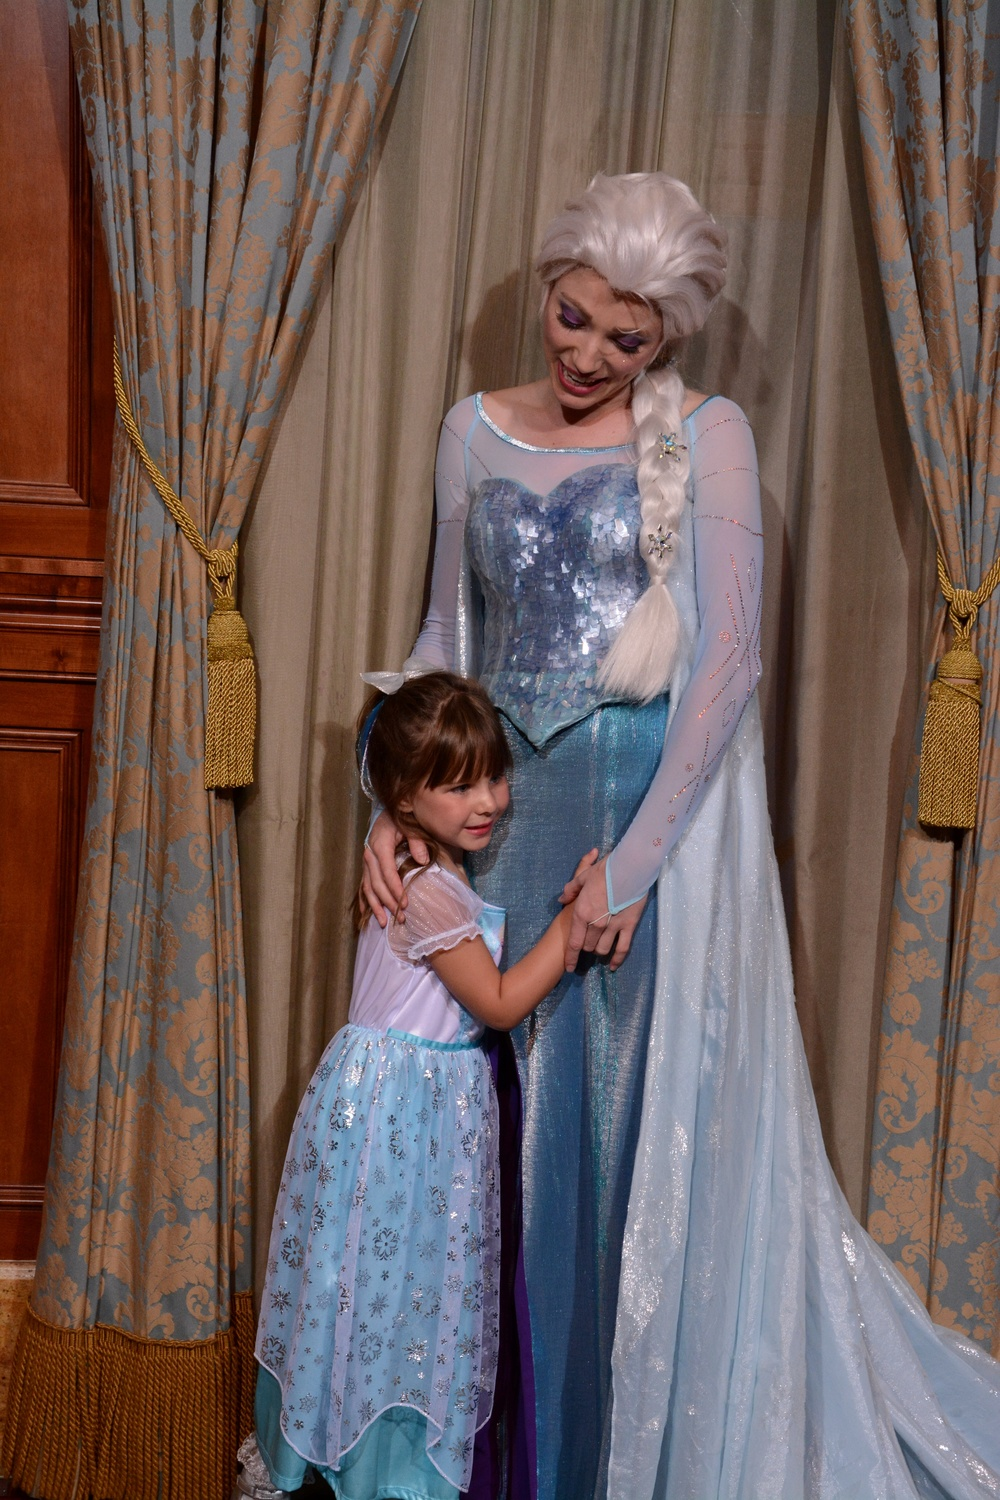 There is a typical 90-minute wait to meet Anna & Elsa. We used a Fast Pass to meet the Queen & Princess...totally Worth it!